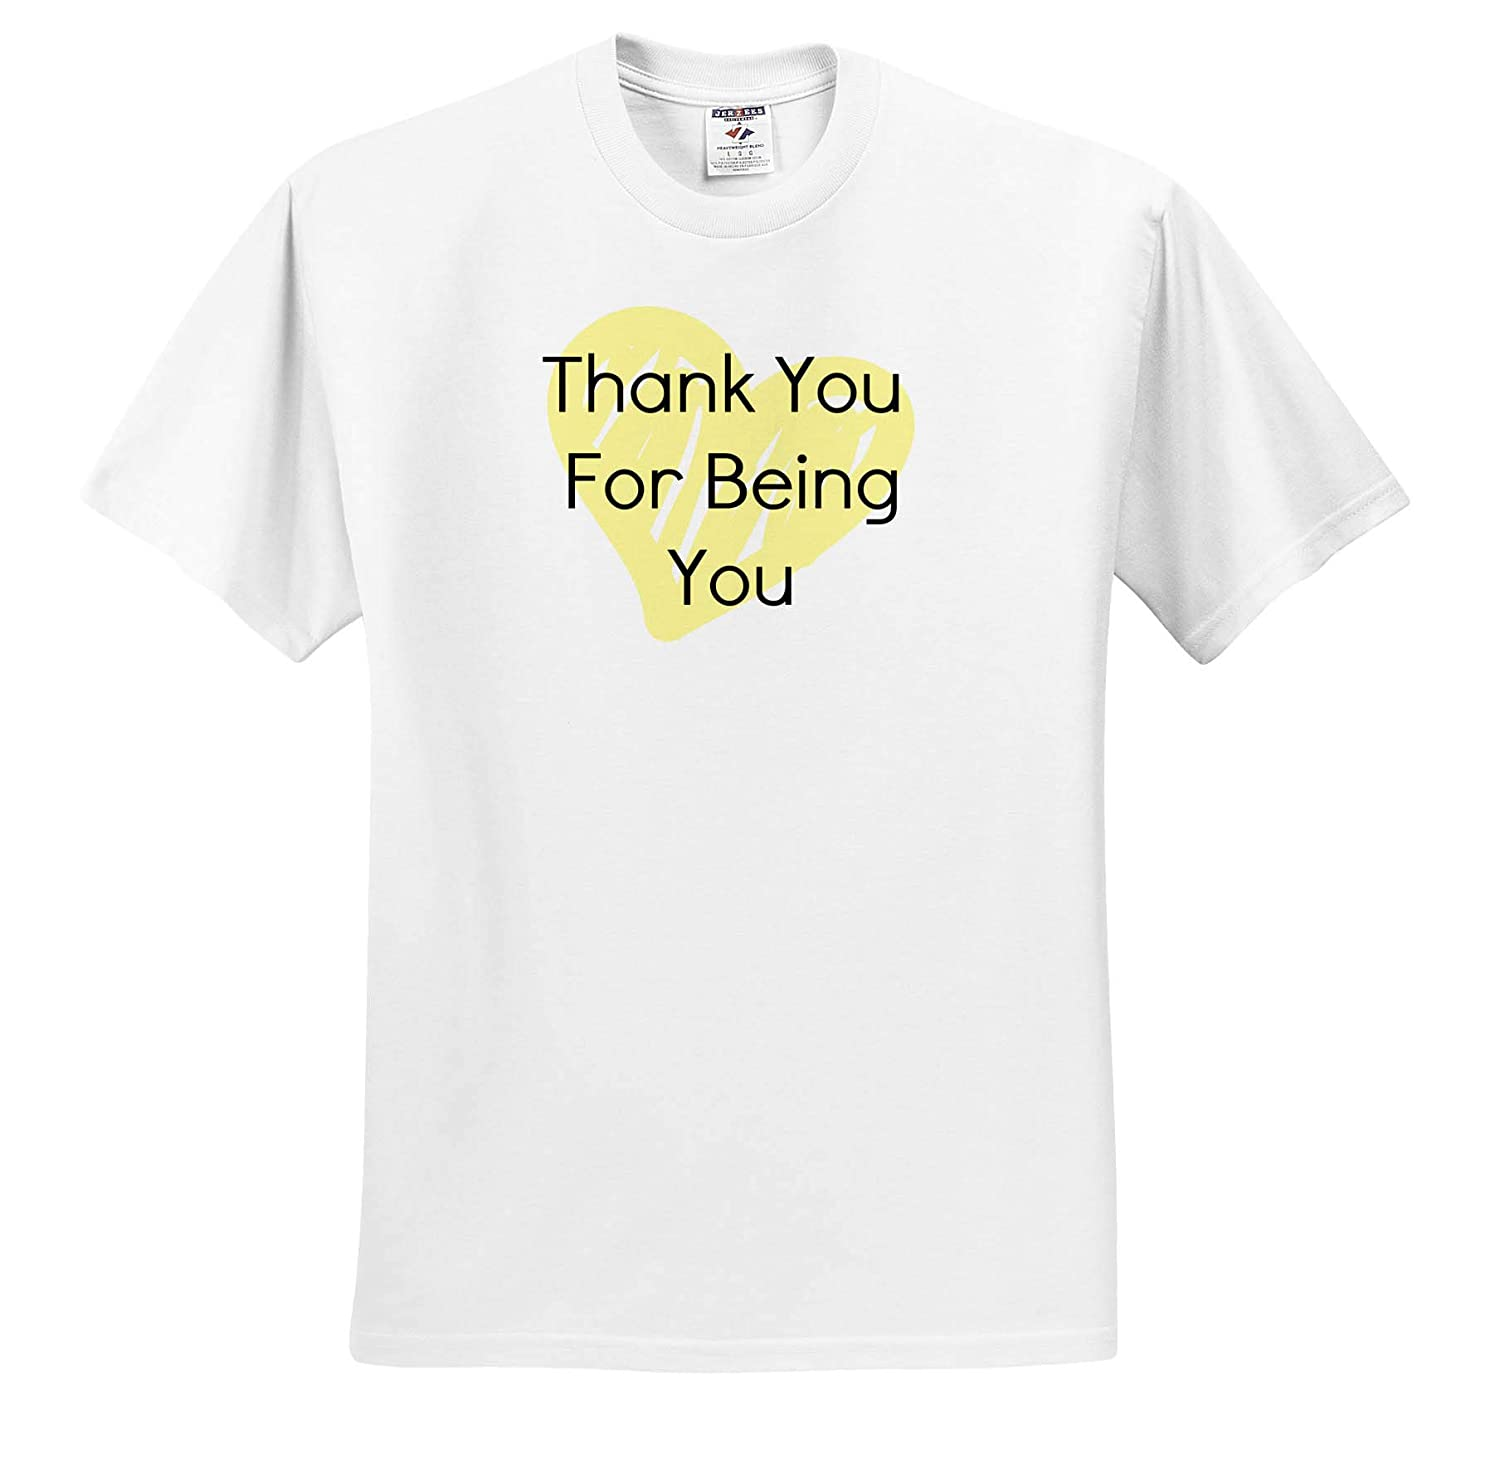 3dRose Carrie Merchant Image Quote Image of Thank You for Being You Adult T-Shirt XL ts/_317455